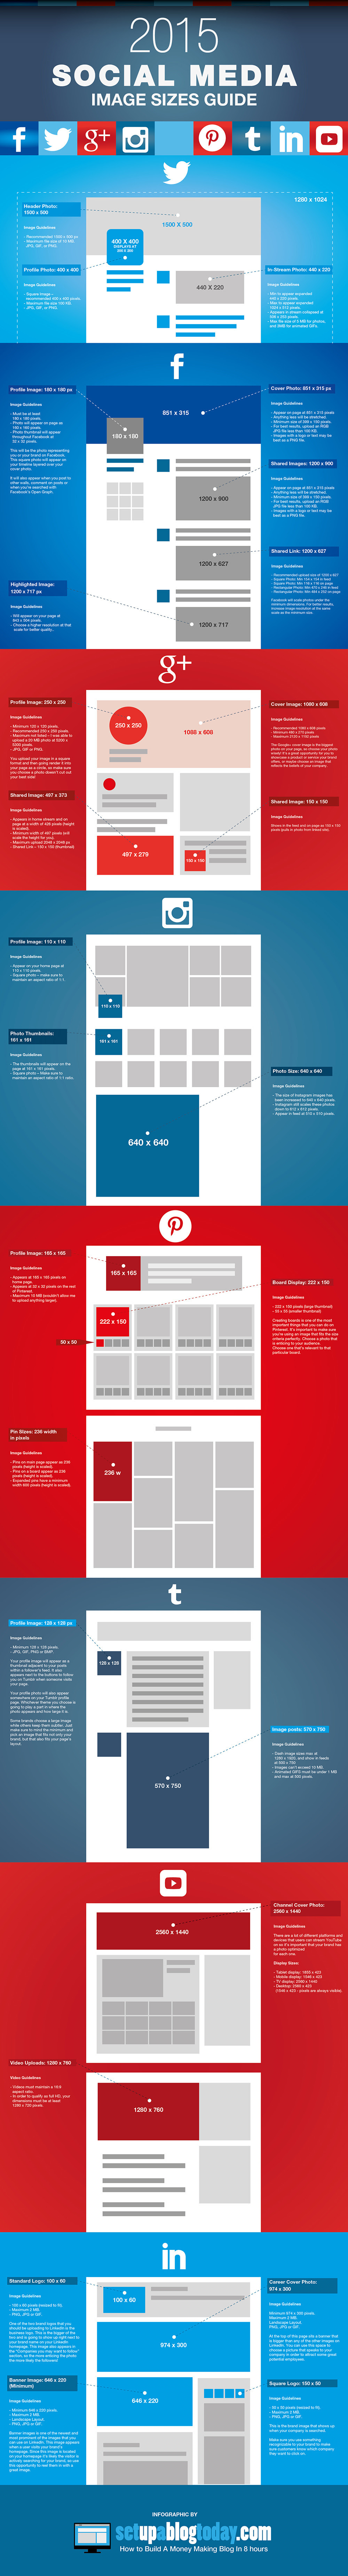 Have you optimized your social media profiles with the right image sizes? With the ever growing need to have a strong social media presence for your business, brand and personal profiles, it's so important to optimize them with the right images to represent you.  Therefore, the folks at setupablogtoday have put together a new infographic, which is an updated image dimensions reference-guide for all the major social media sites (Instagram, Pinterest, Tumblr, Twitter, LinkedIn, Facebook, GooglePlus, YouTube). Bookmark it and take notes.